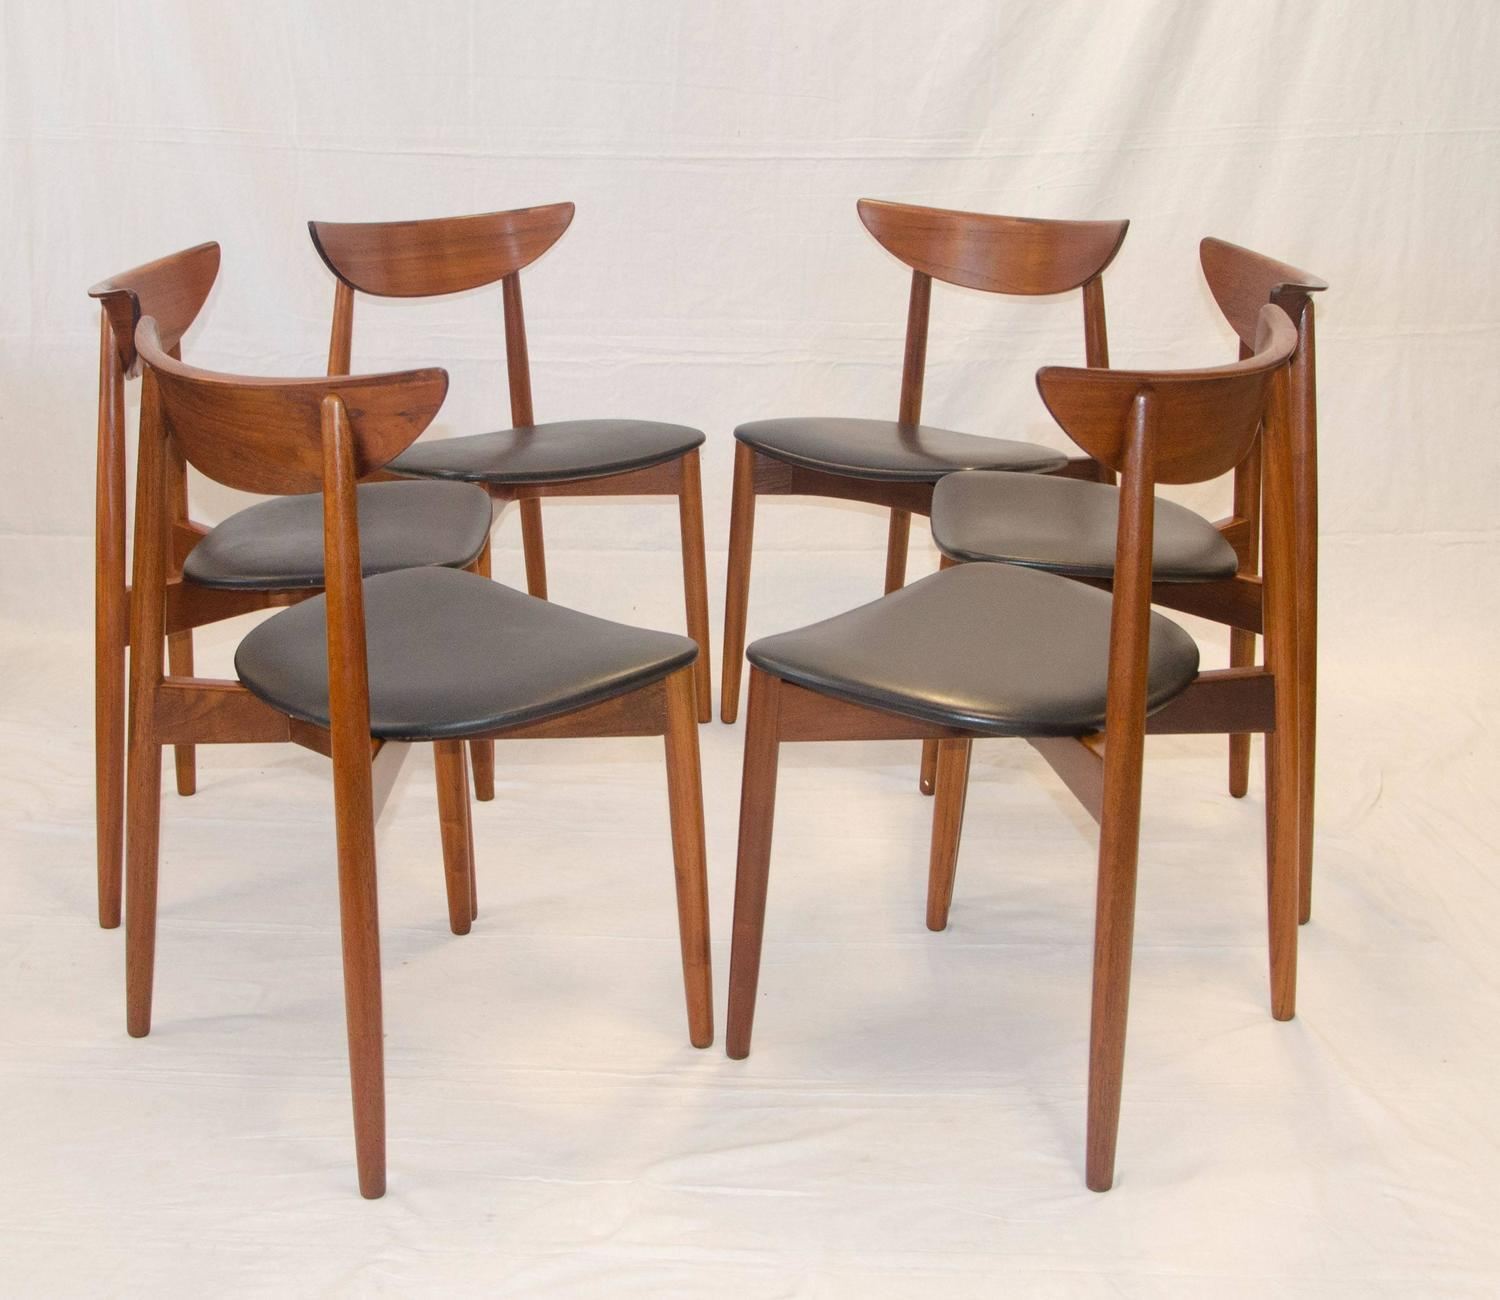 leather chair covers the best protection world market papasan set of ten teak dining chairs, harry ostergaard for moreddi sale at 1stdibs